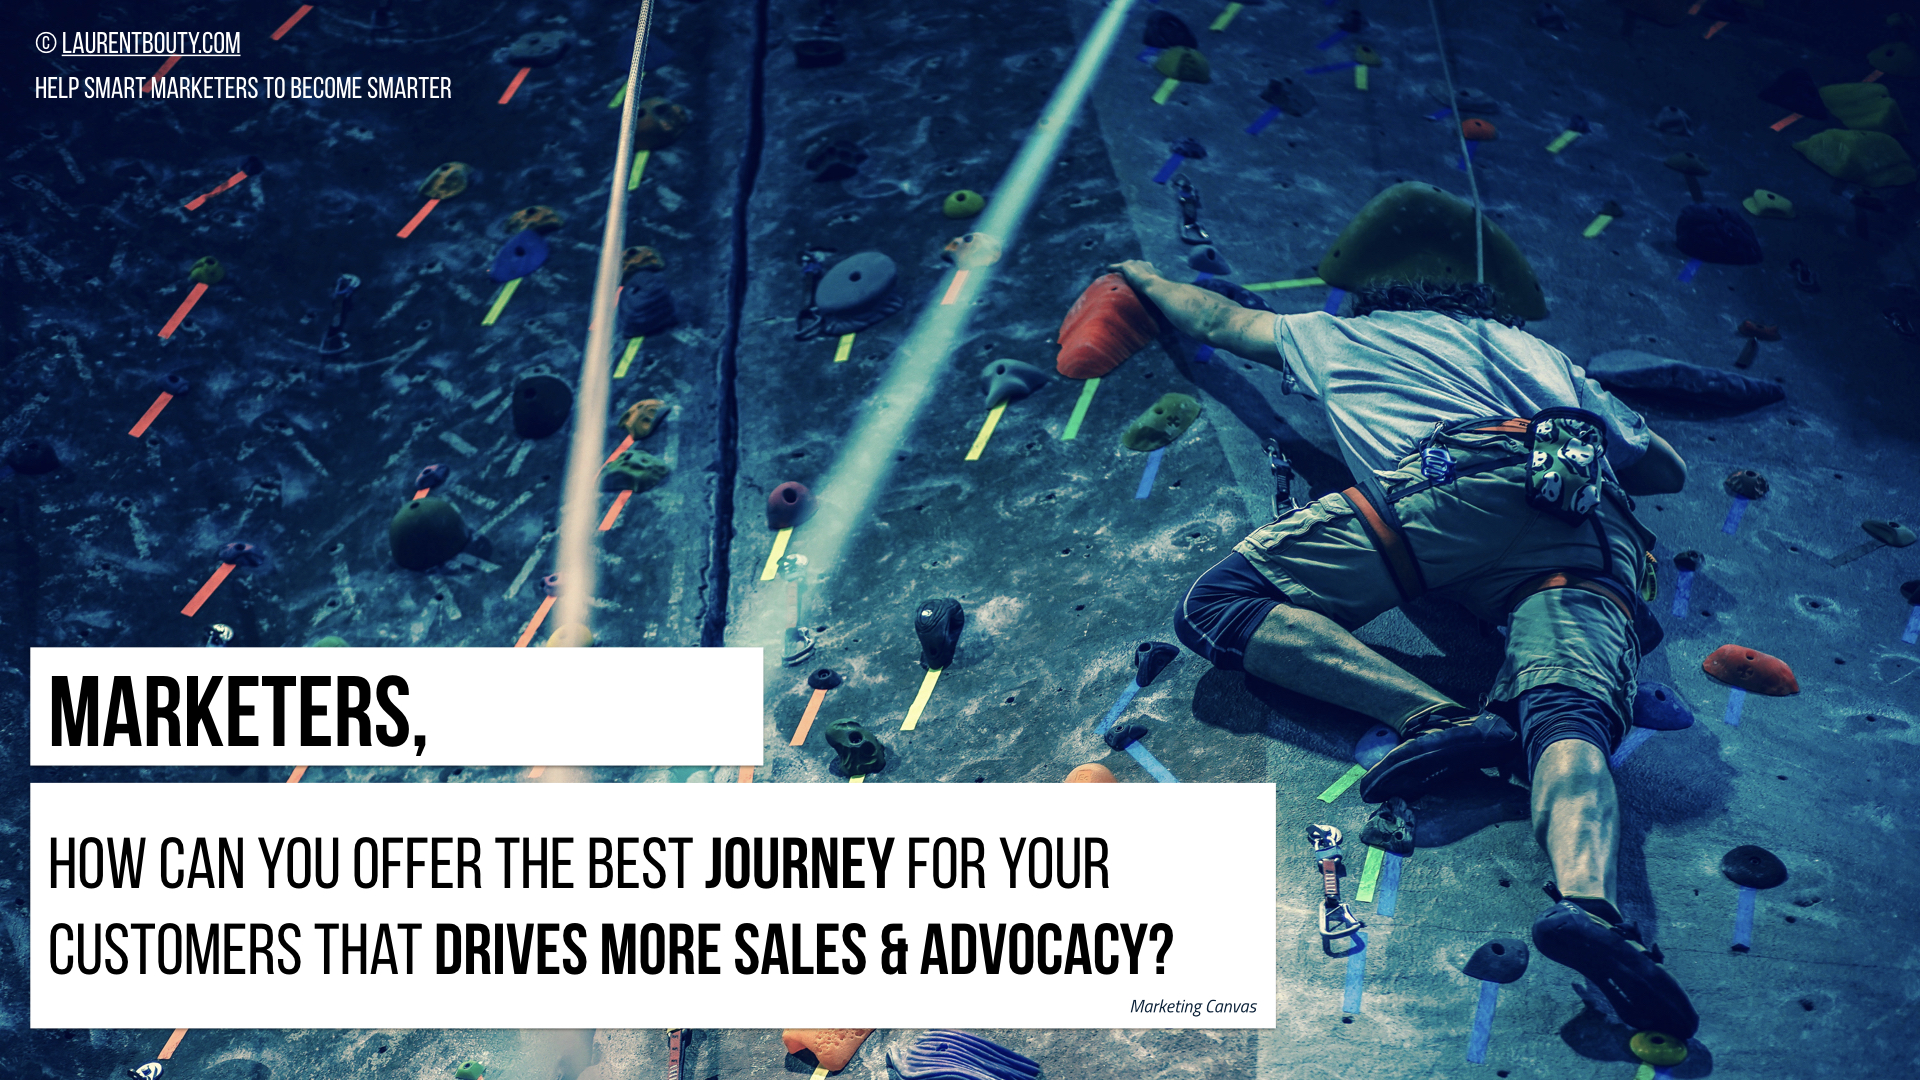 How can you offer the best journey for your customers?